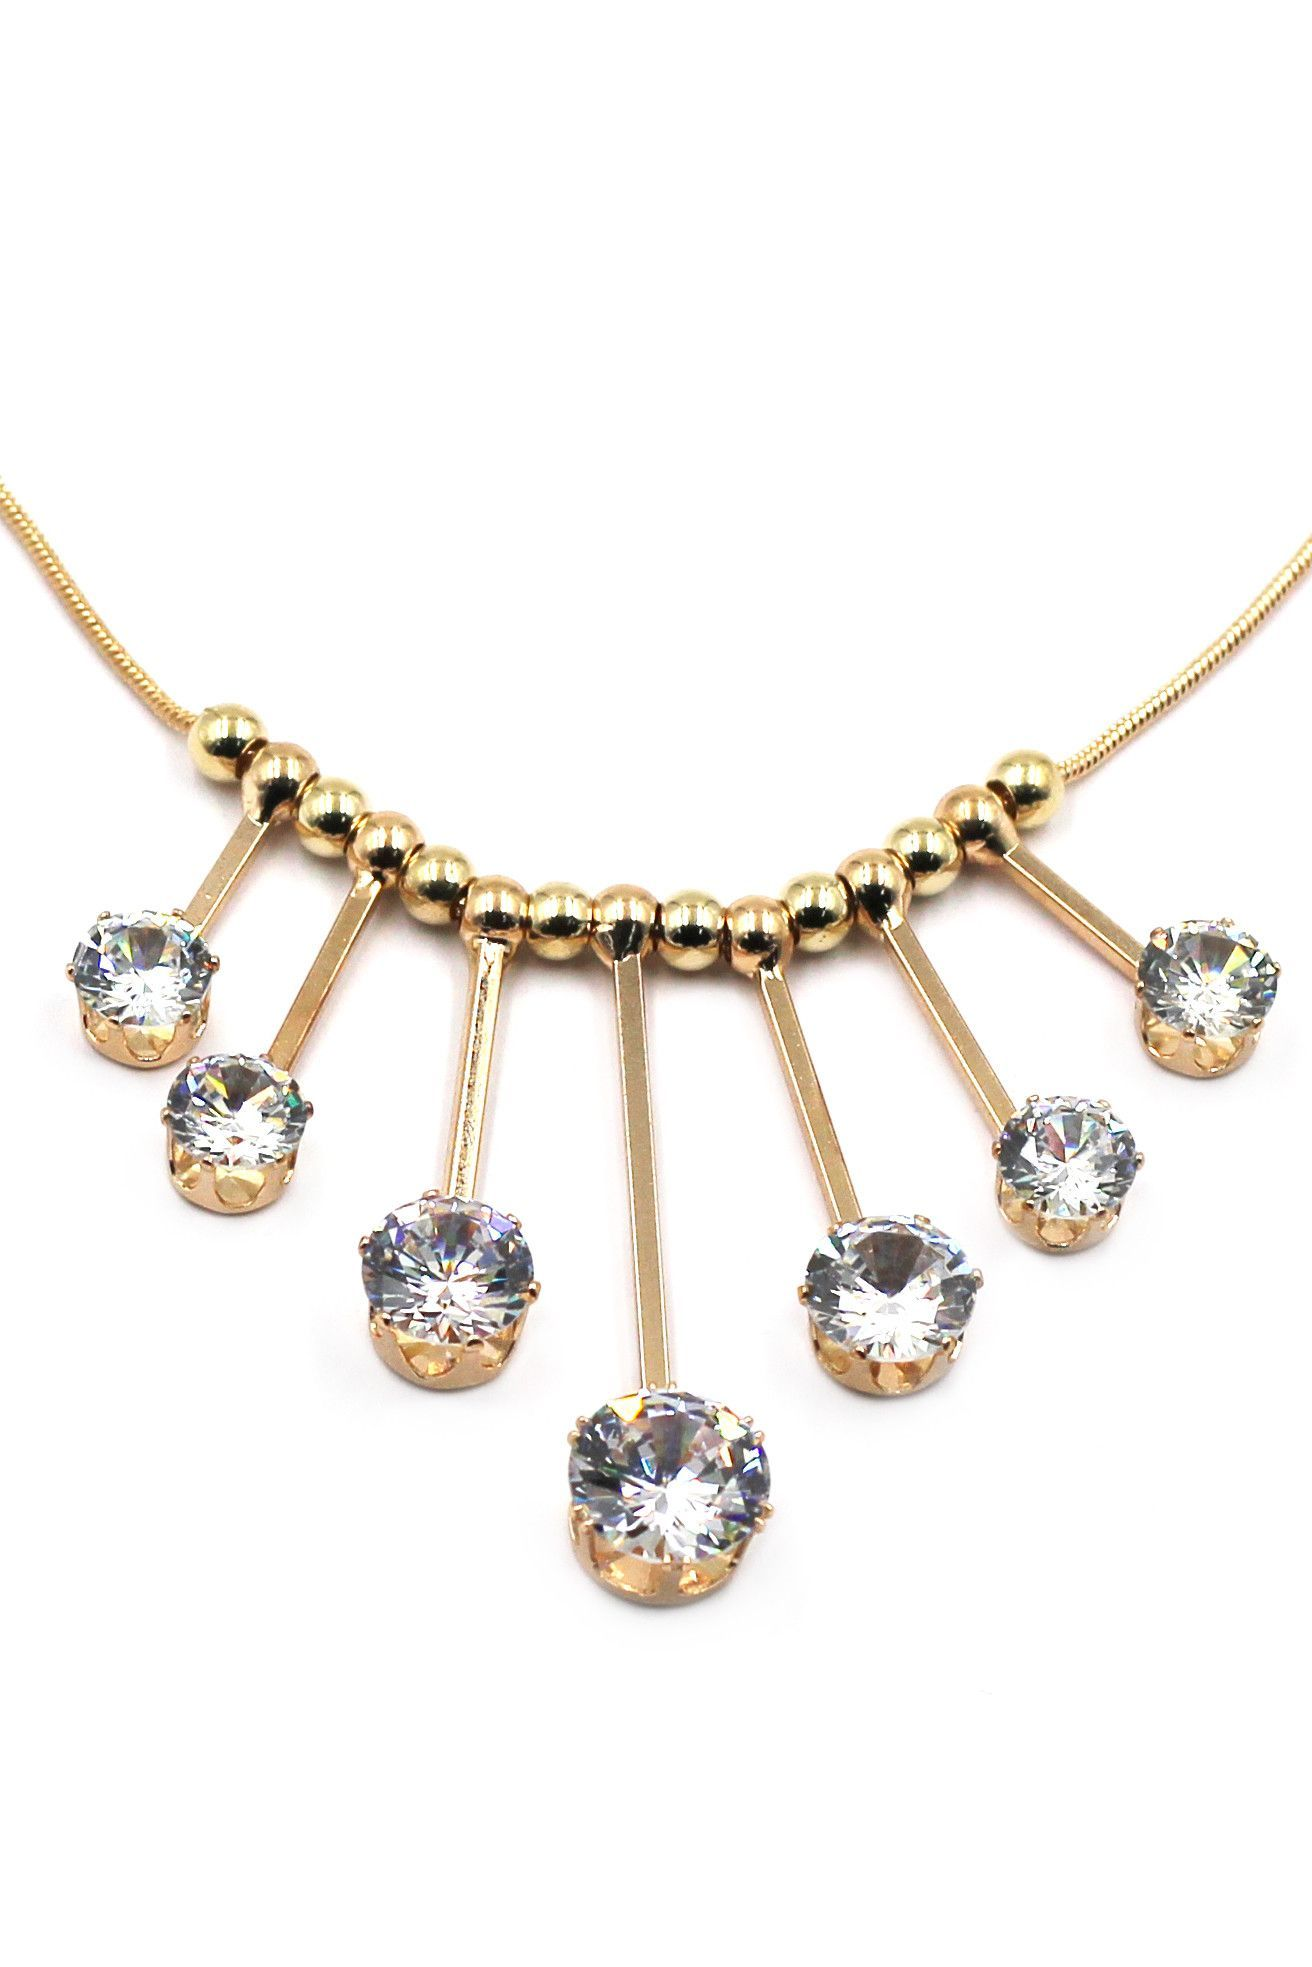 noble hammer large crystal metal necklace